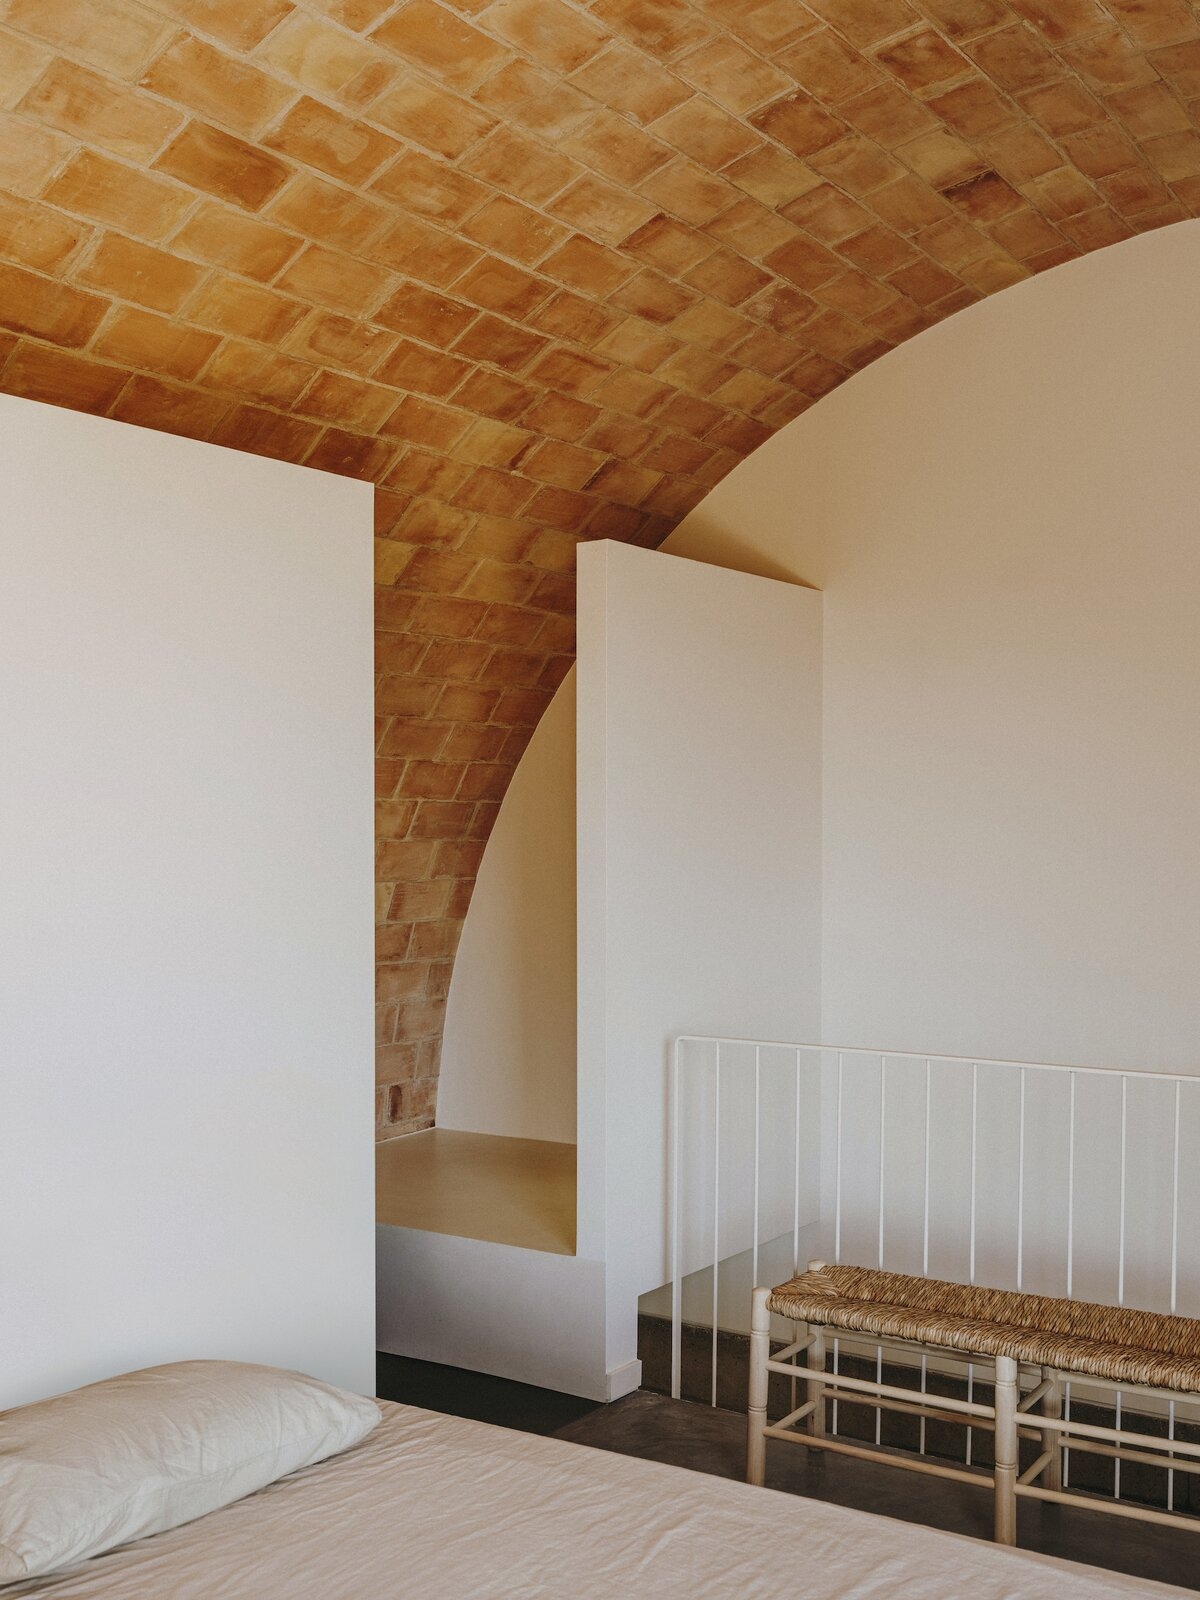 Master bedroom of Casa Ter by Mesura with vaulted ceiling.